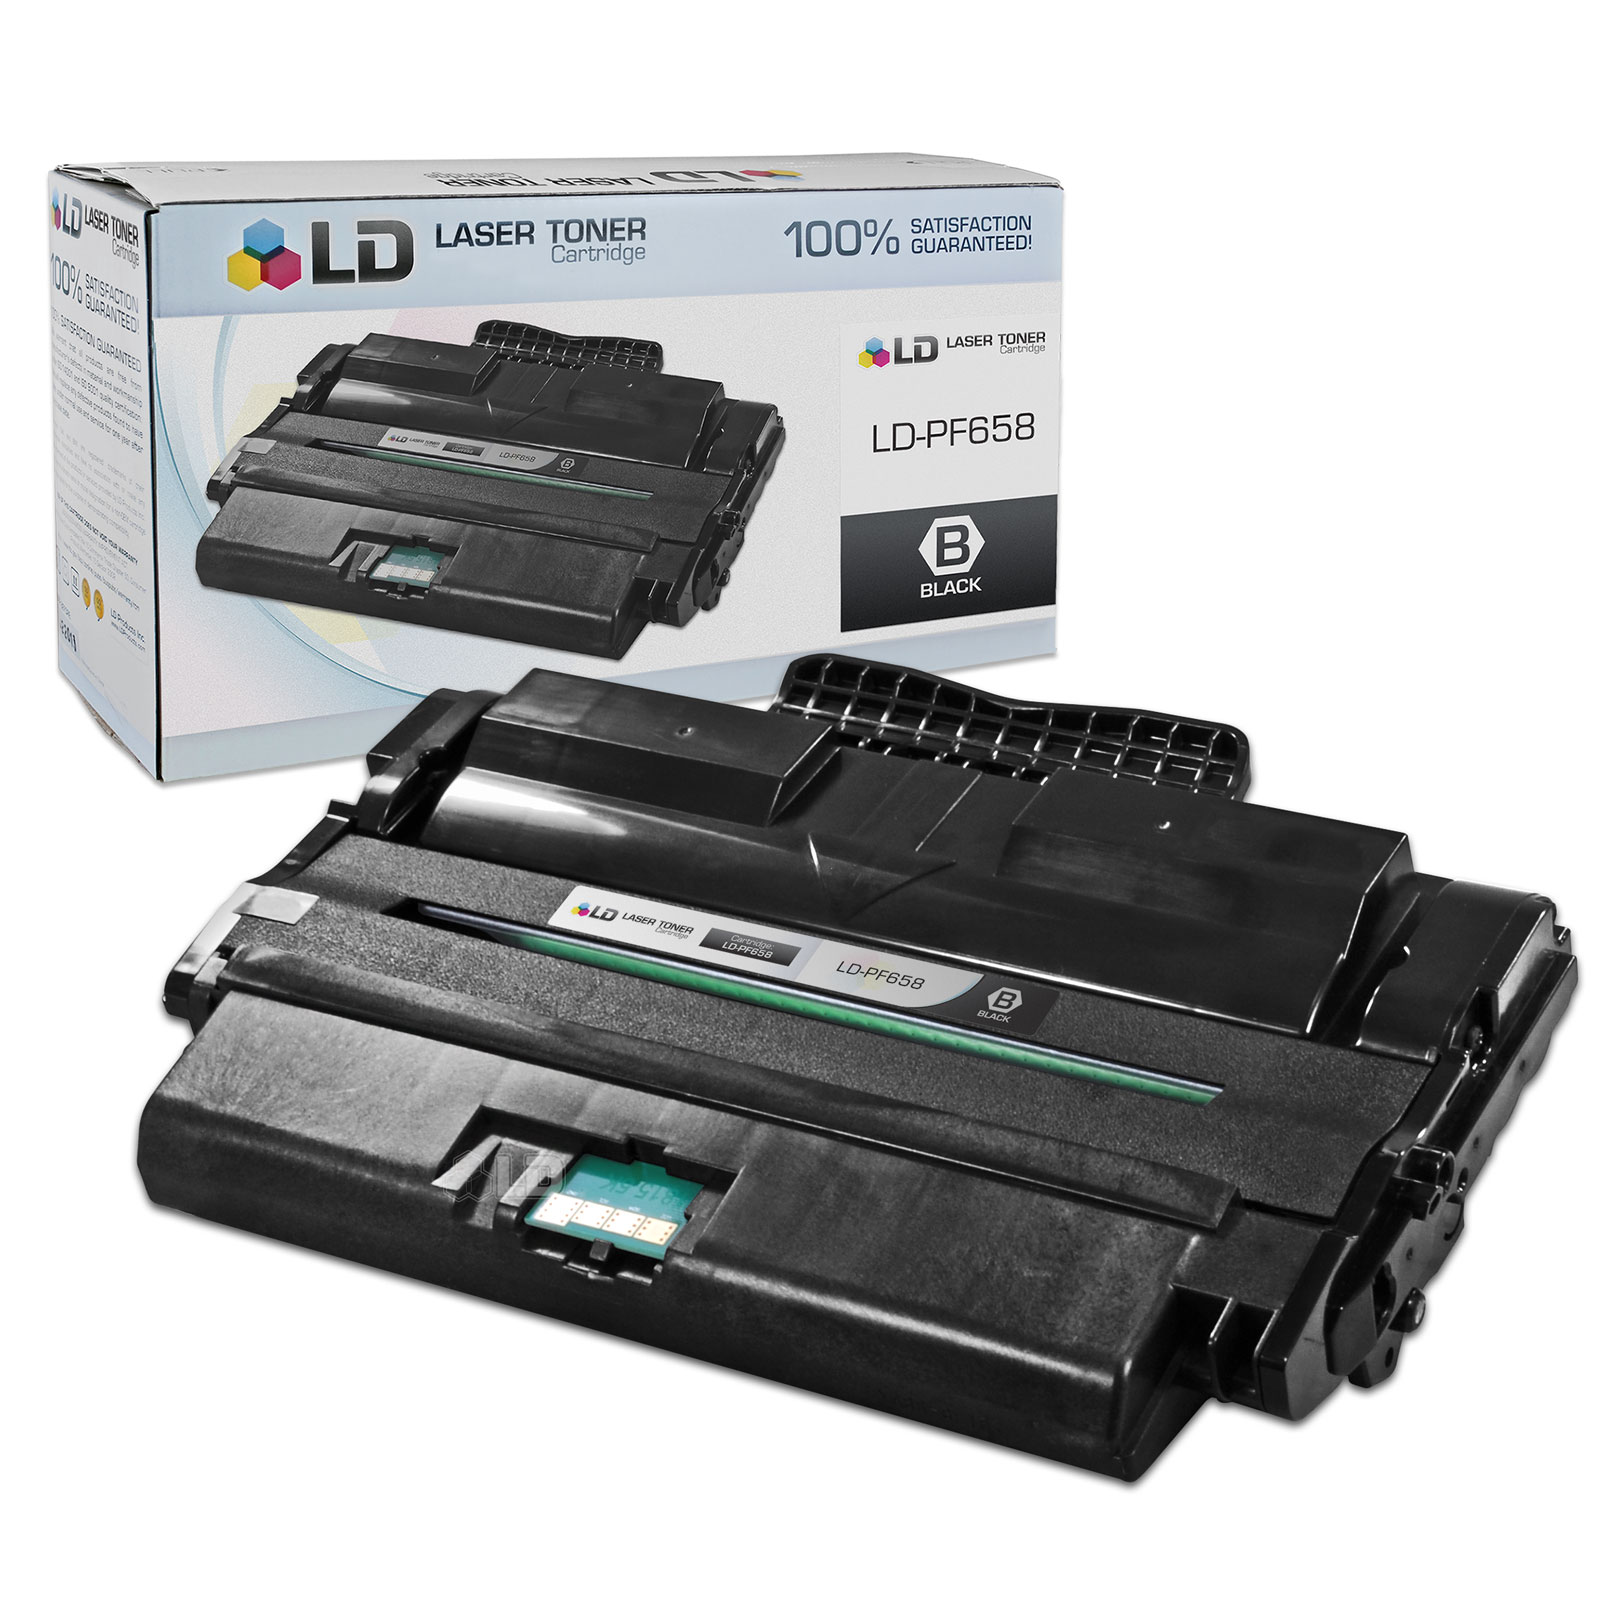 LD Compatible Replacement for Dell PF658 (310-7945) High Yield Black Laser Toner Cartridge for use in Dell